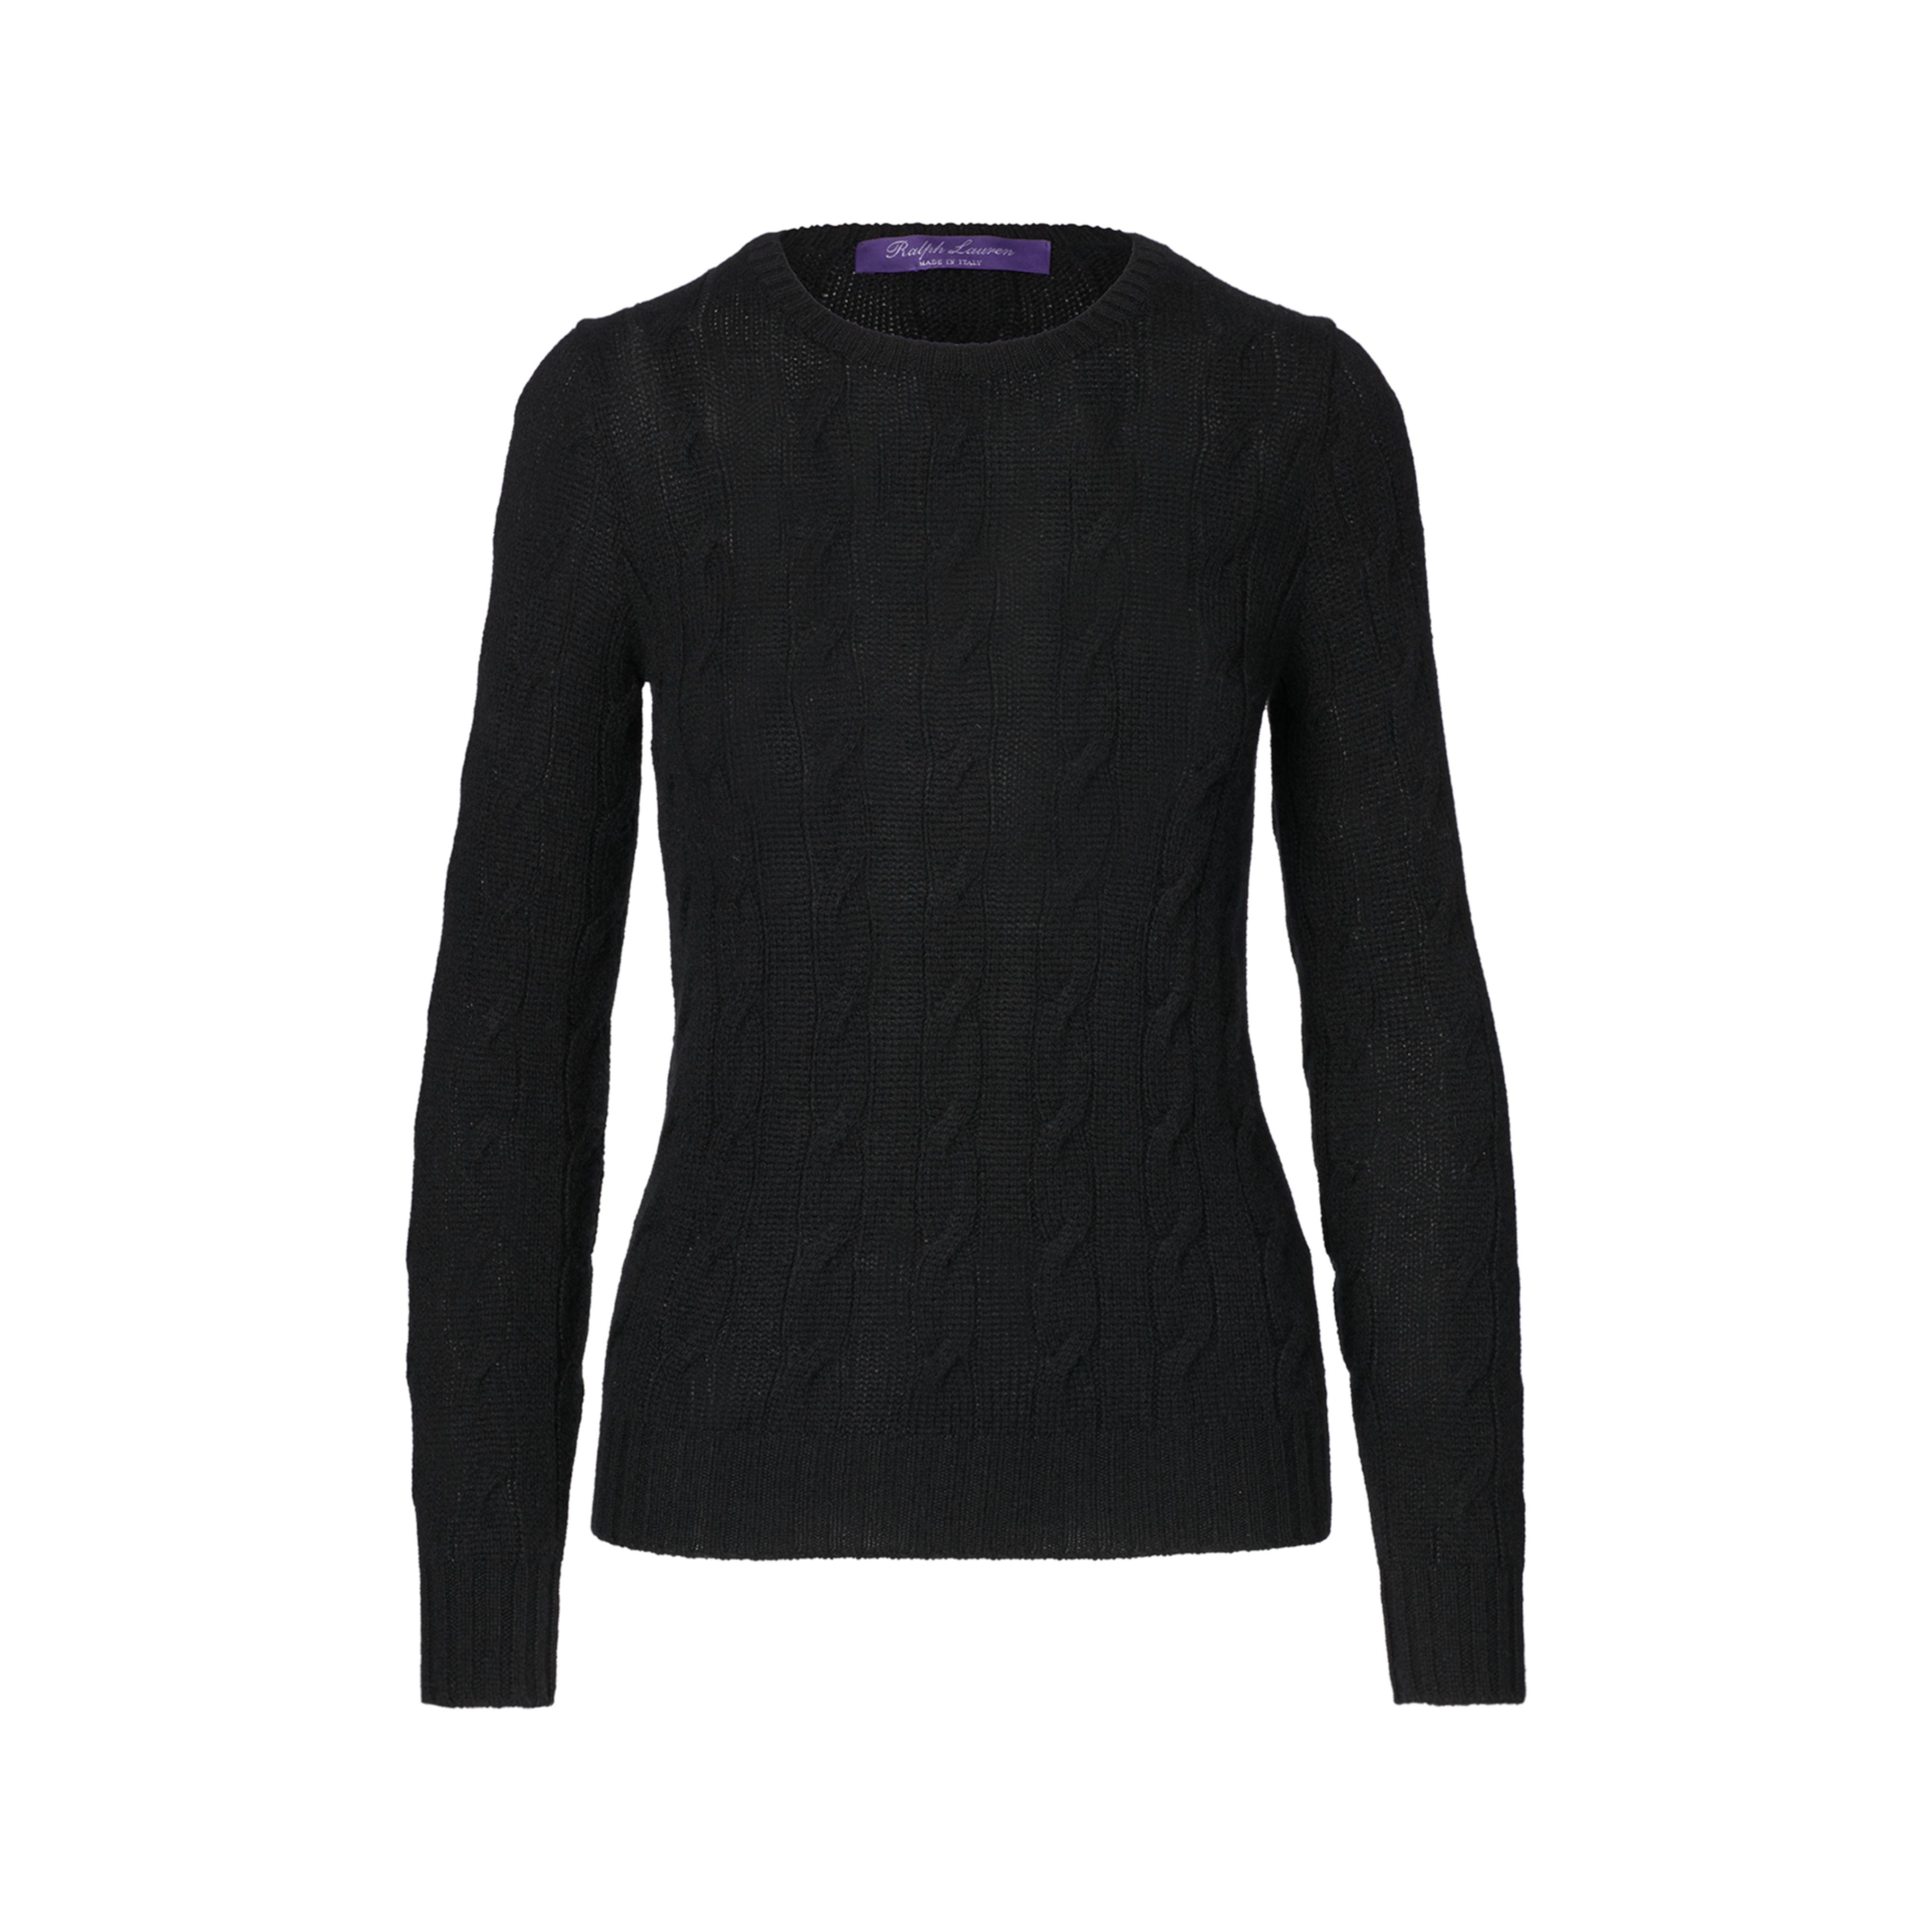 Ralph lauren Cable-knit Cashmere Sweater in Black | Lyst